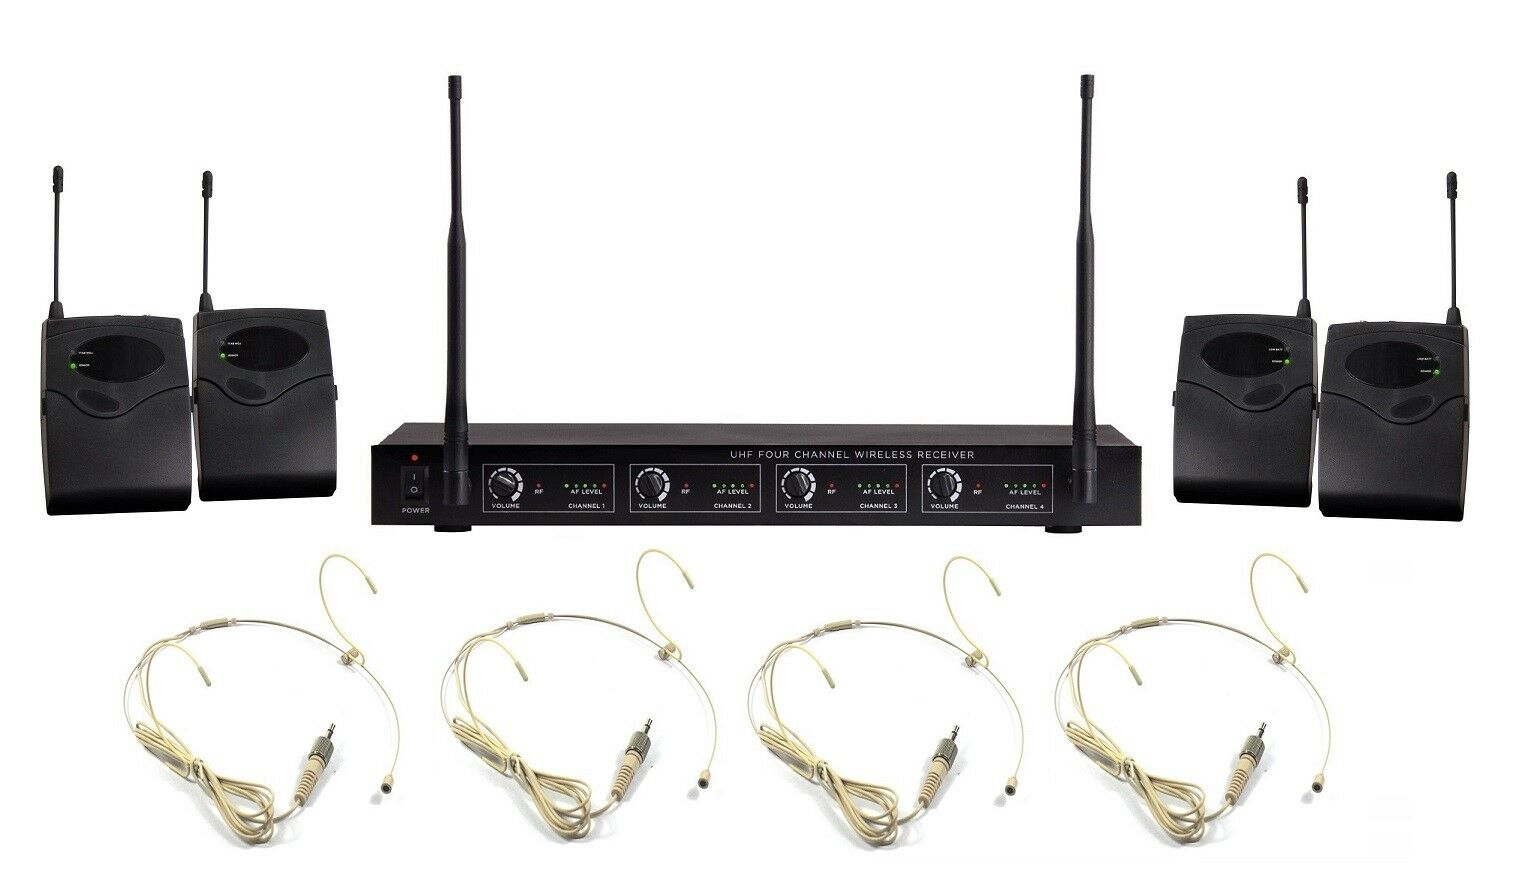 Professional Vocal Microphone 4 Channels Wireless Nude Headset Microphone System